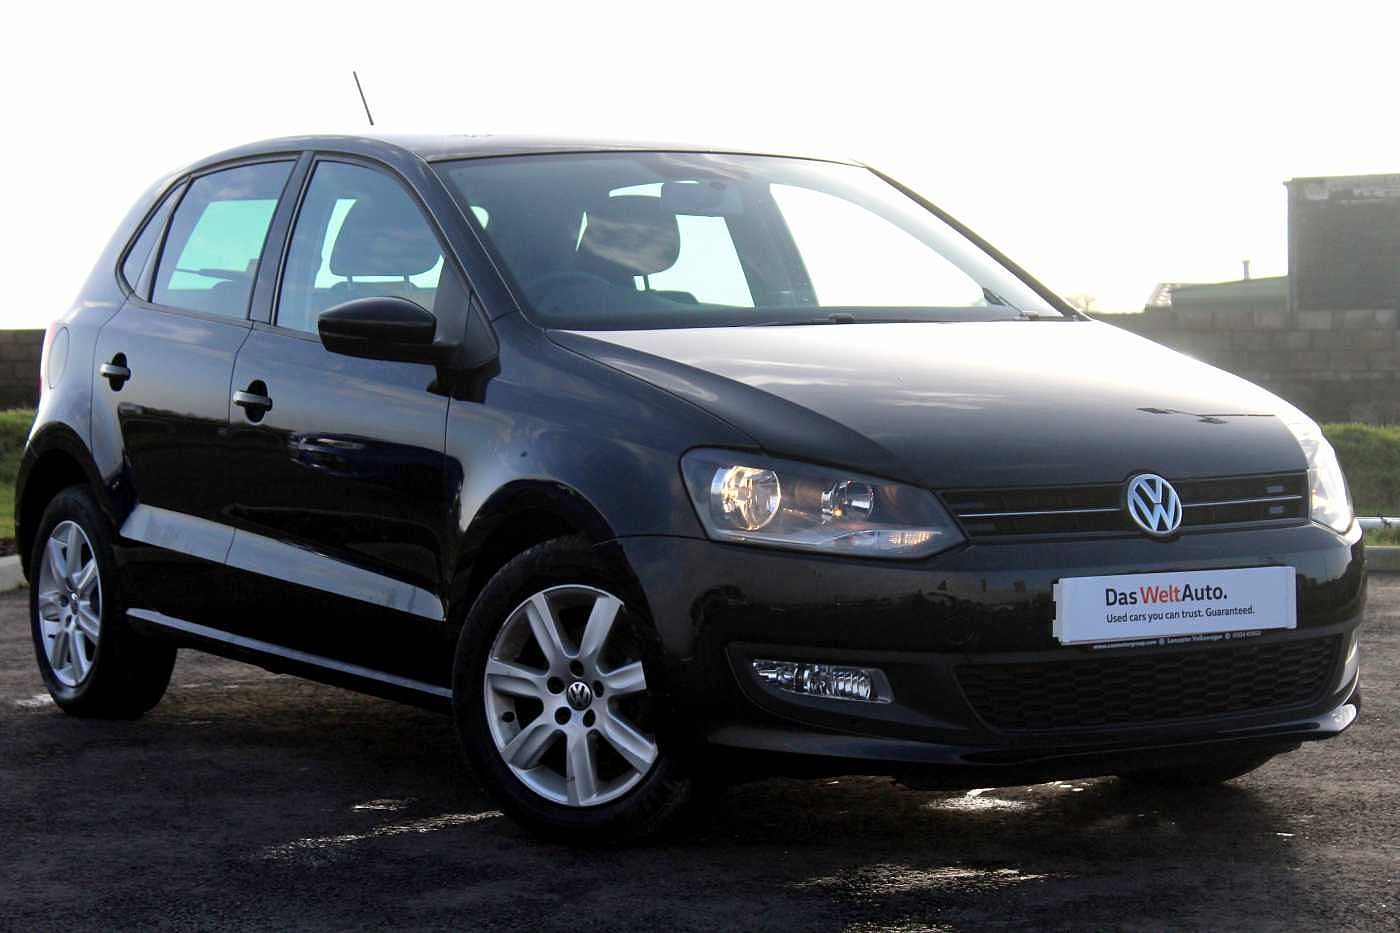 Volkswagen Polo 1.2 60PS Match Edition 5Dr